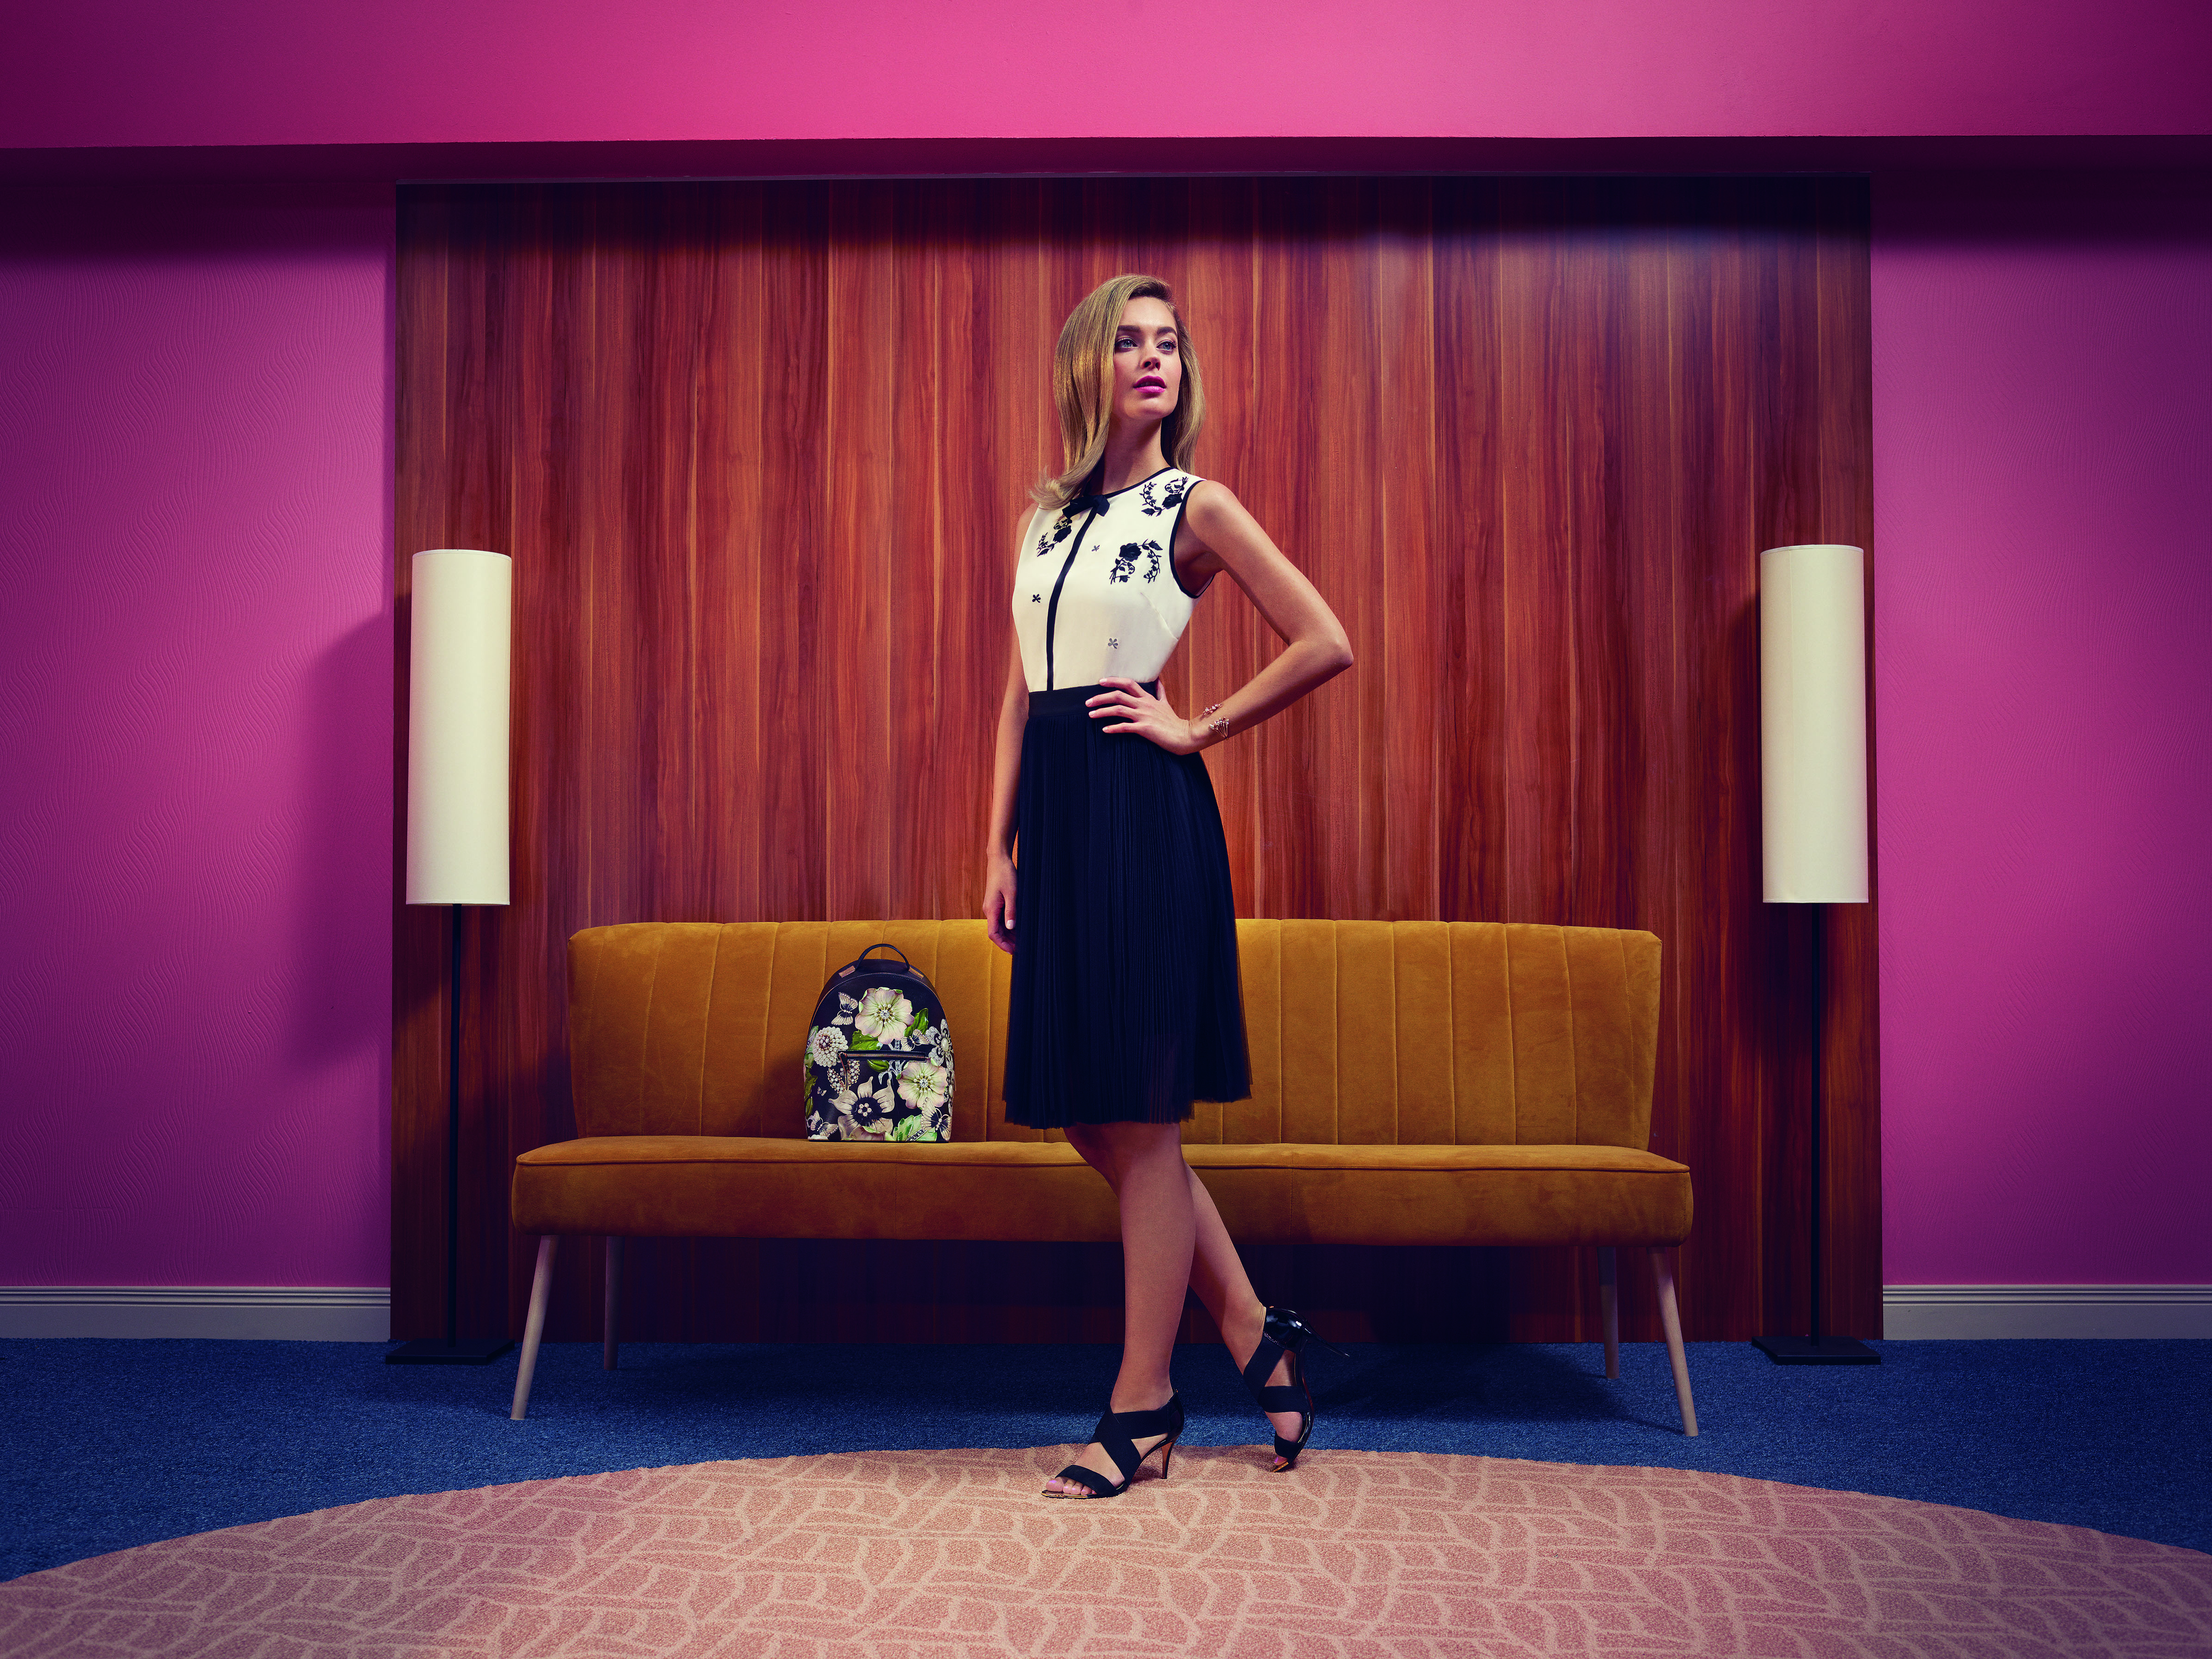 Ted Baker SS 2017 Ad Campaign 4